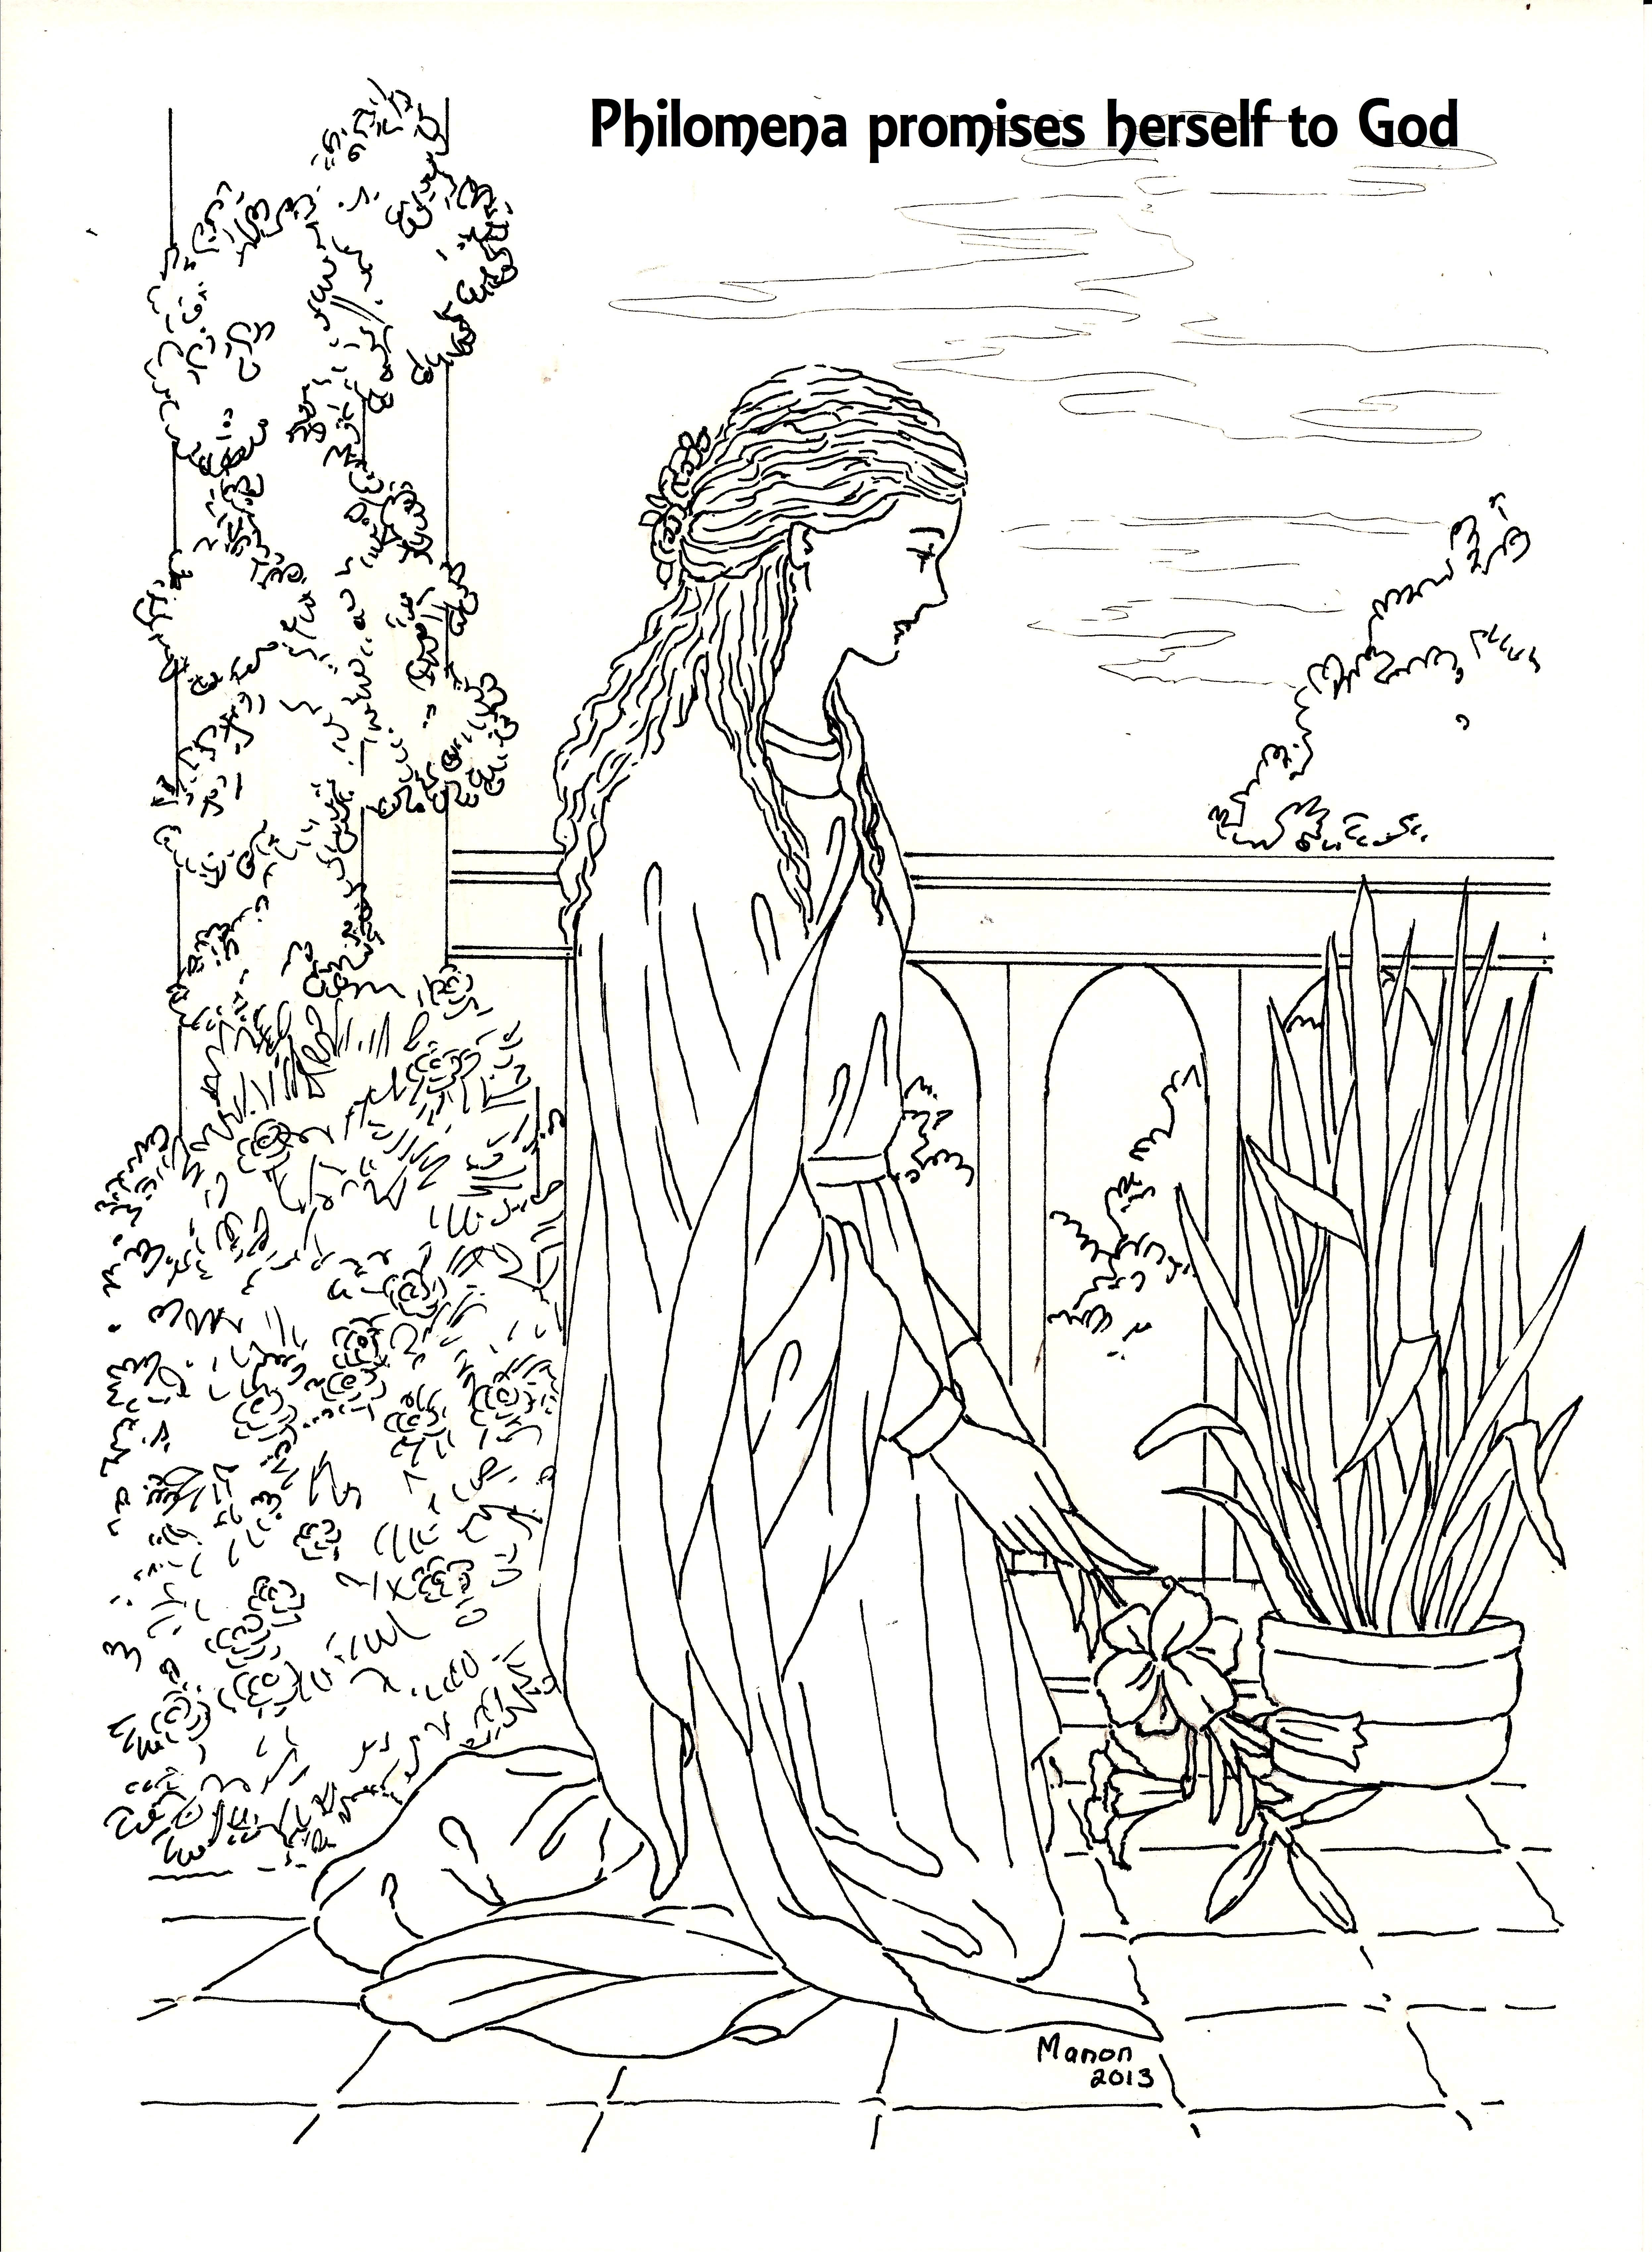 St Philomena A Page To Colour St Philomena Promising Herself To